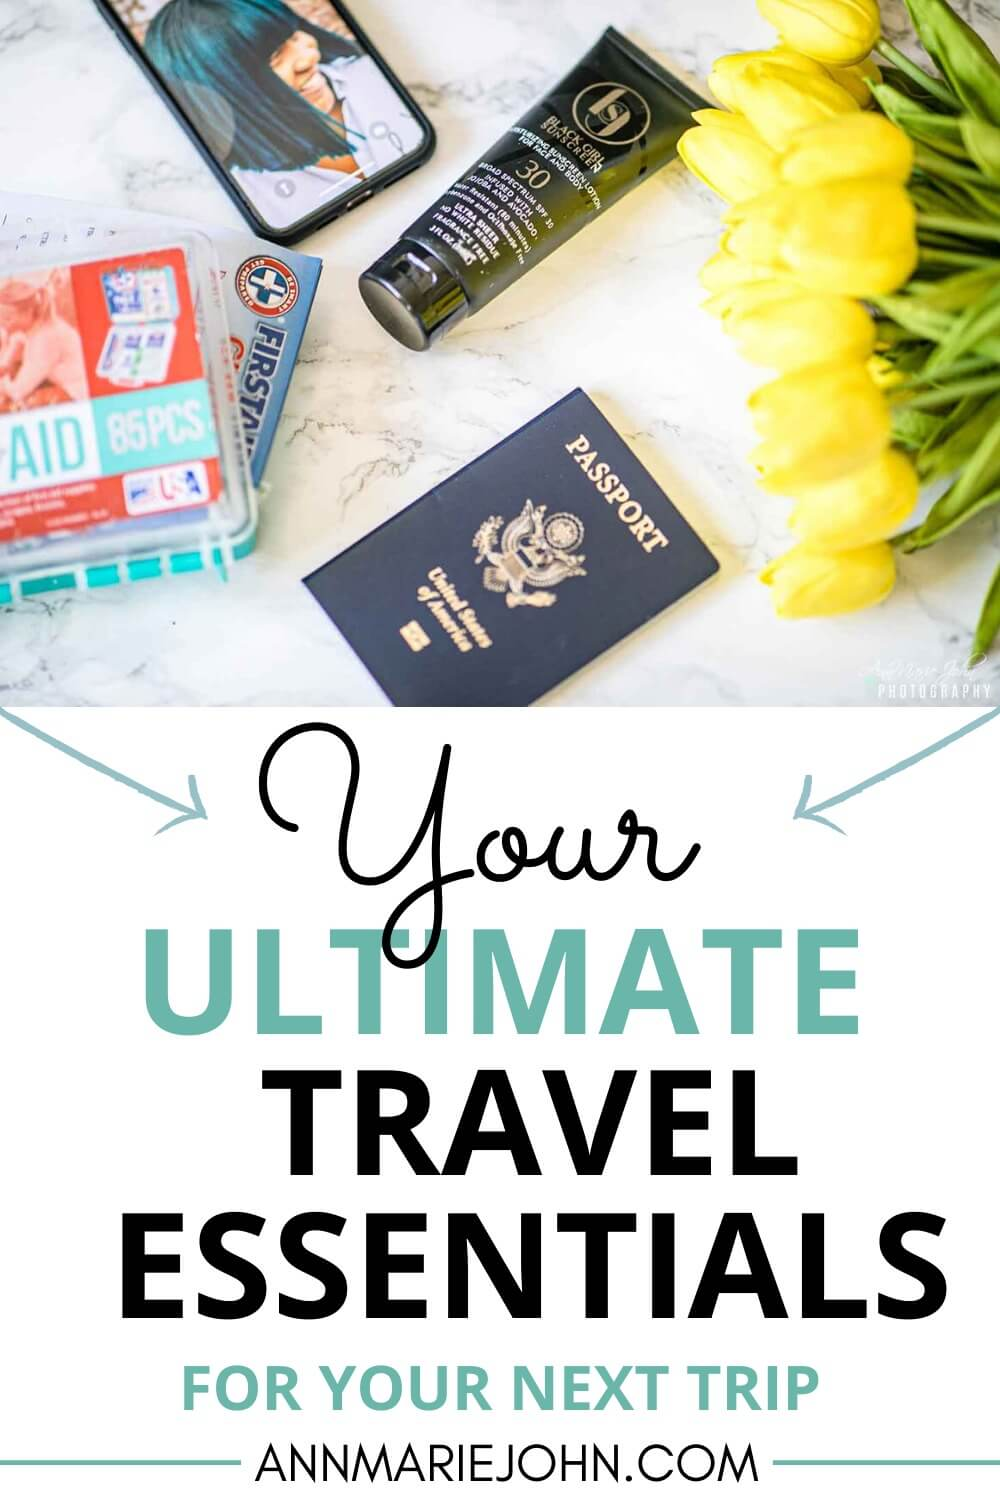 Your ultimate travel essentials for your next trip